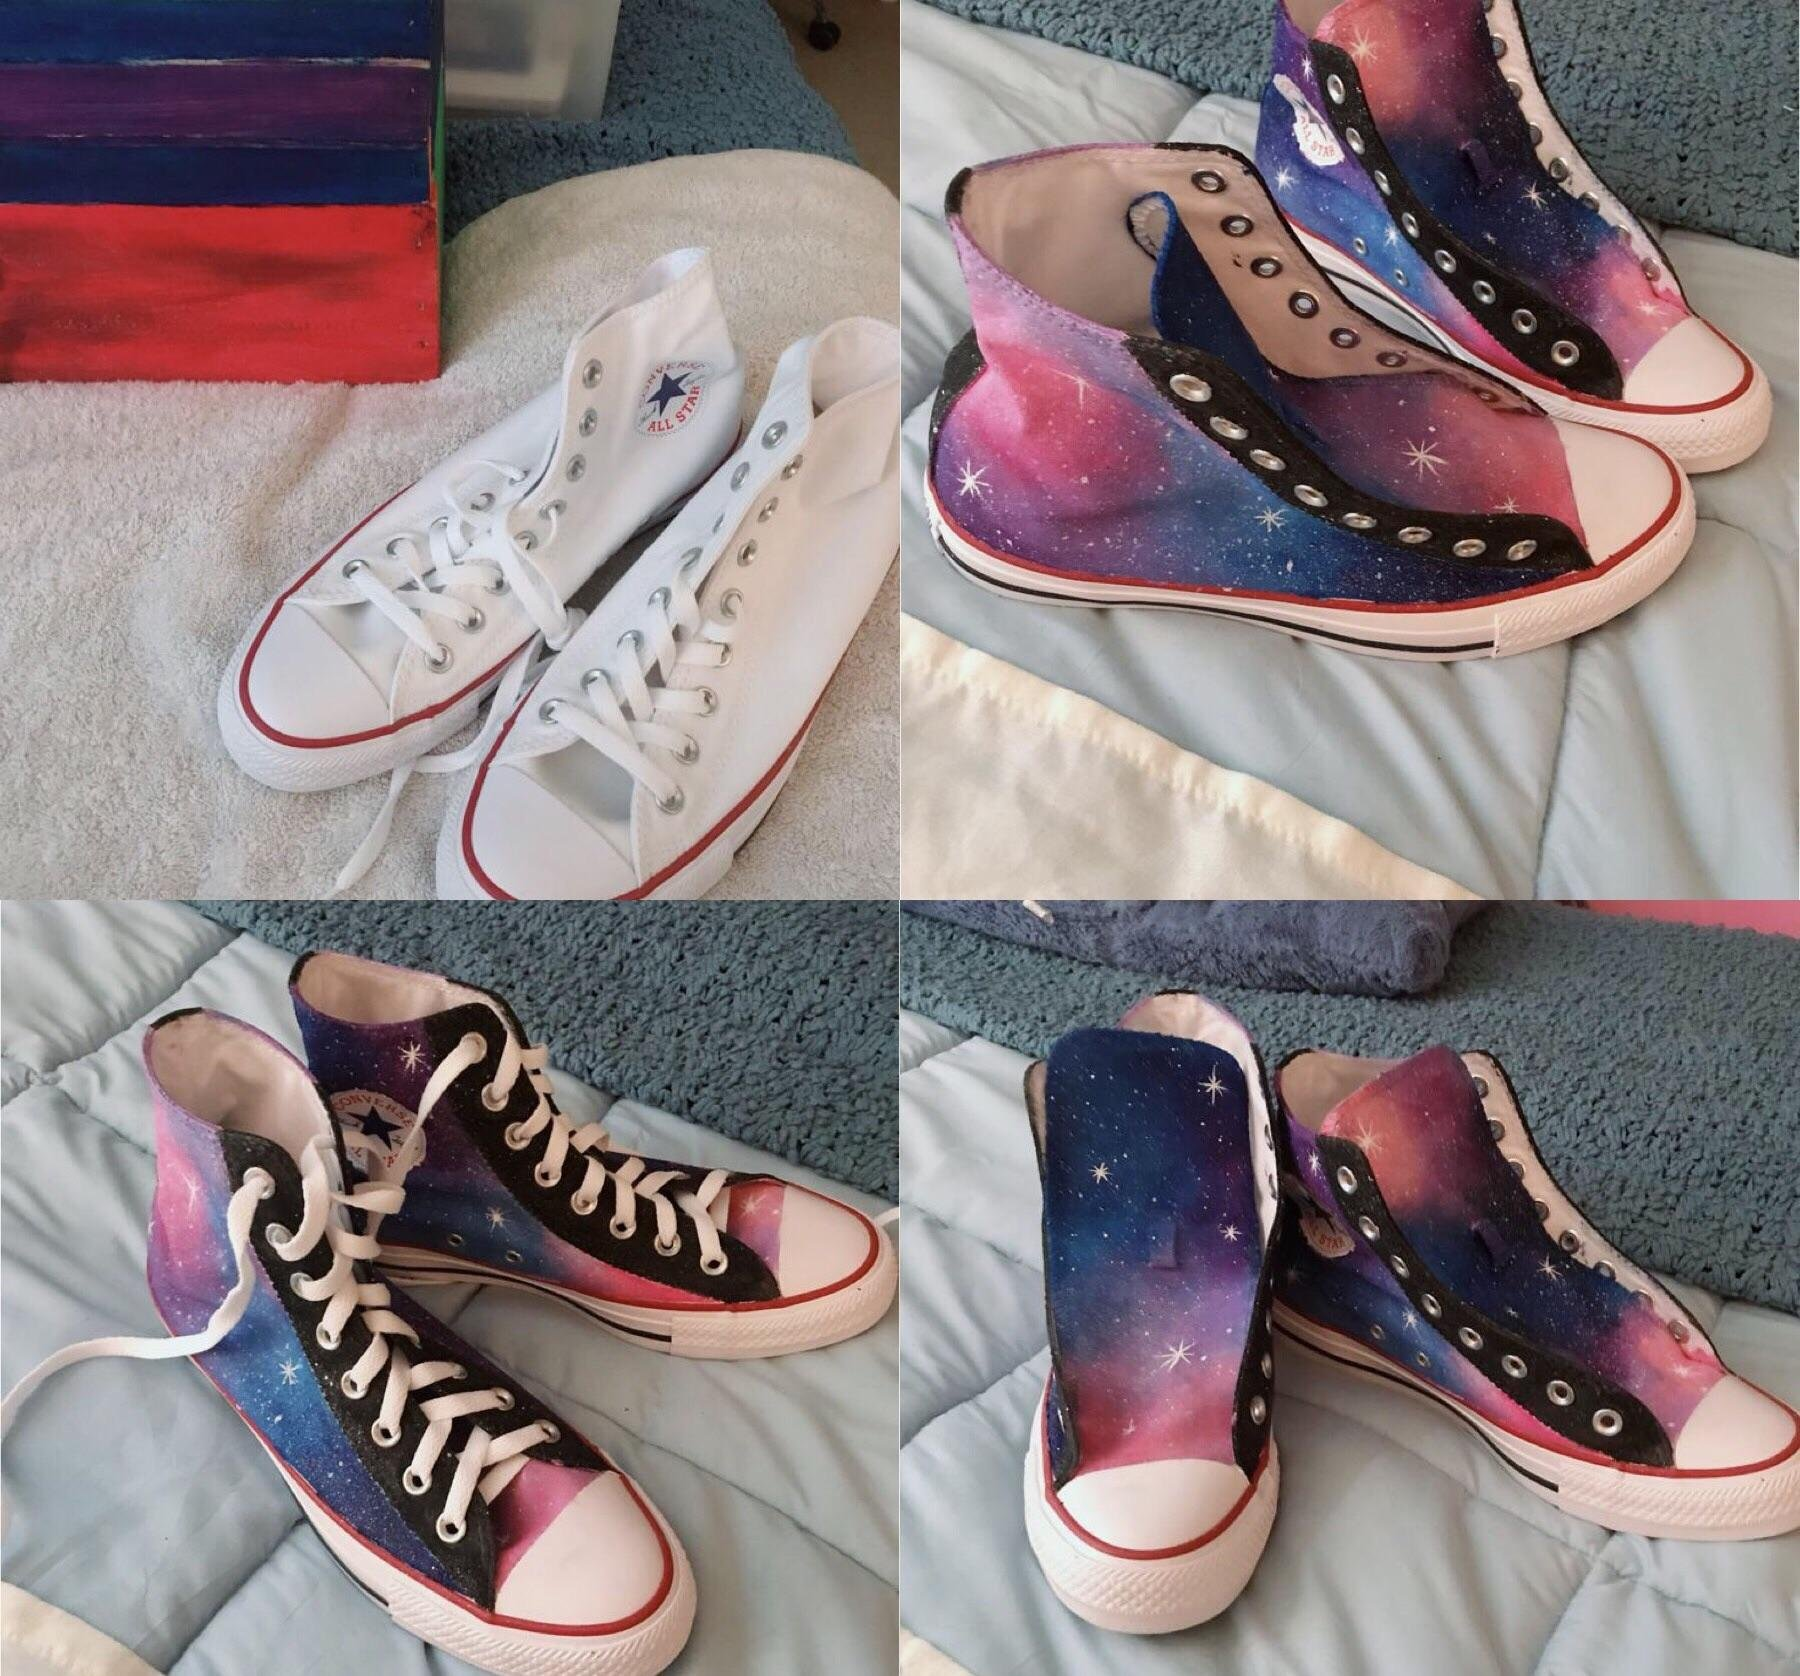 7b1726b0be64 Memes a pair of painted converse sister worked very hard on funny pictures  converse jpg 1800x1676